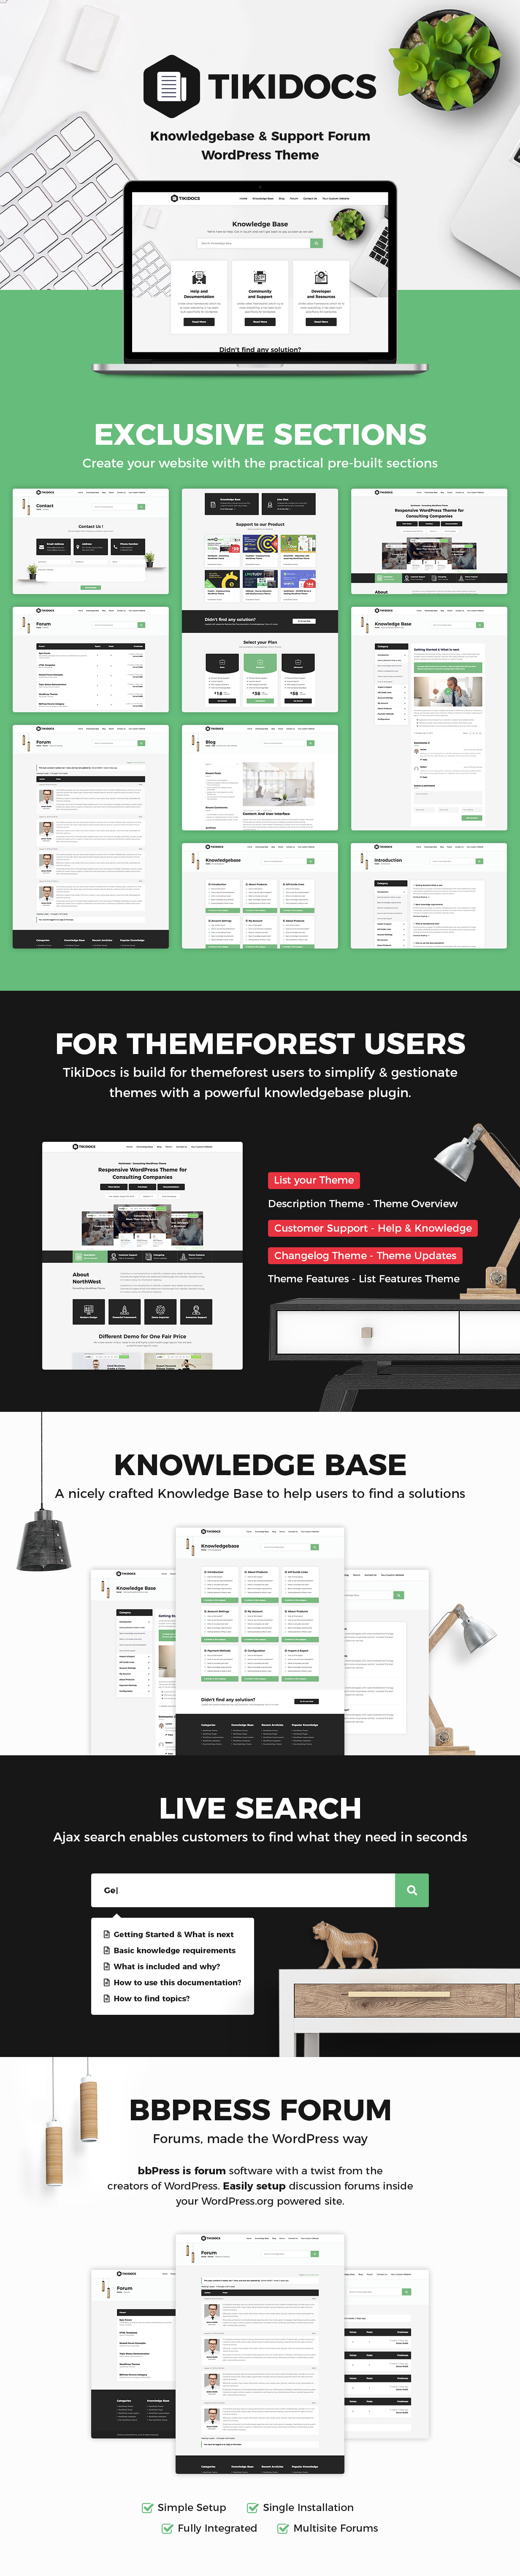 Tikidocs - Knowledgebase & Support Forum WordPress Theme + RTL - 2